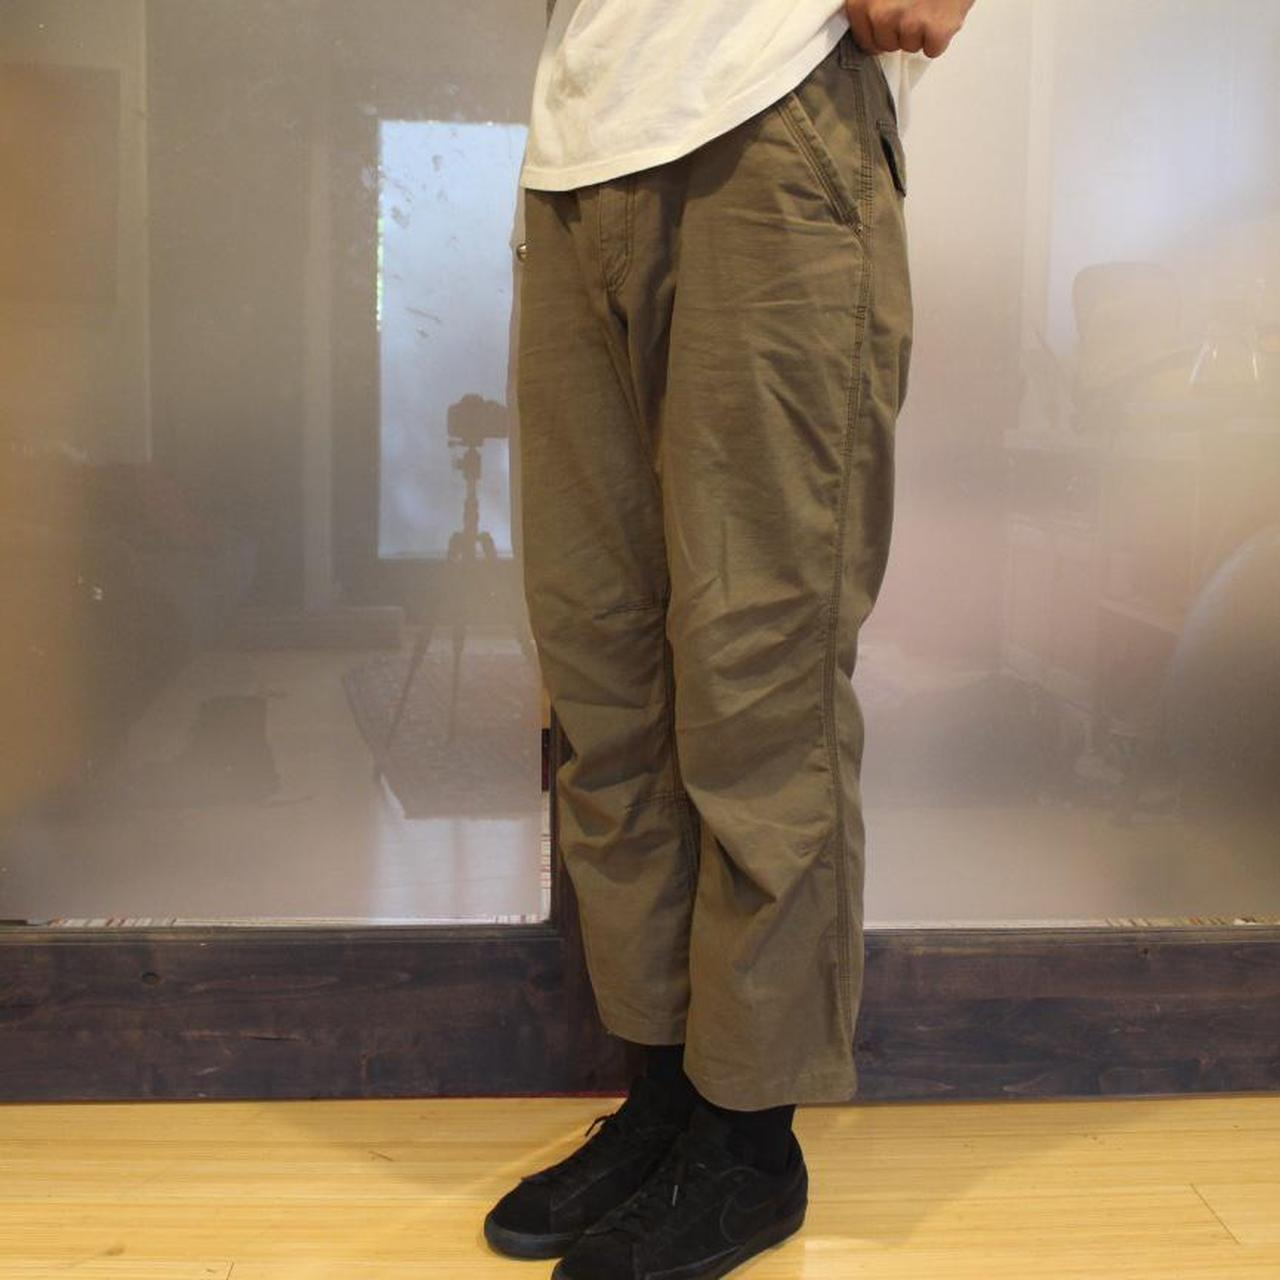 Product Image 1 - Carhartt carpenter pants great condition -tan